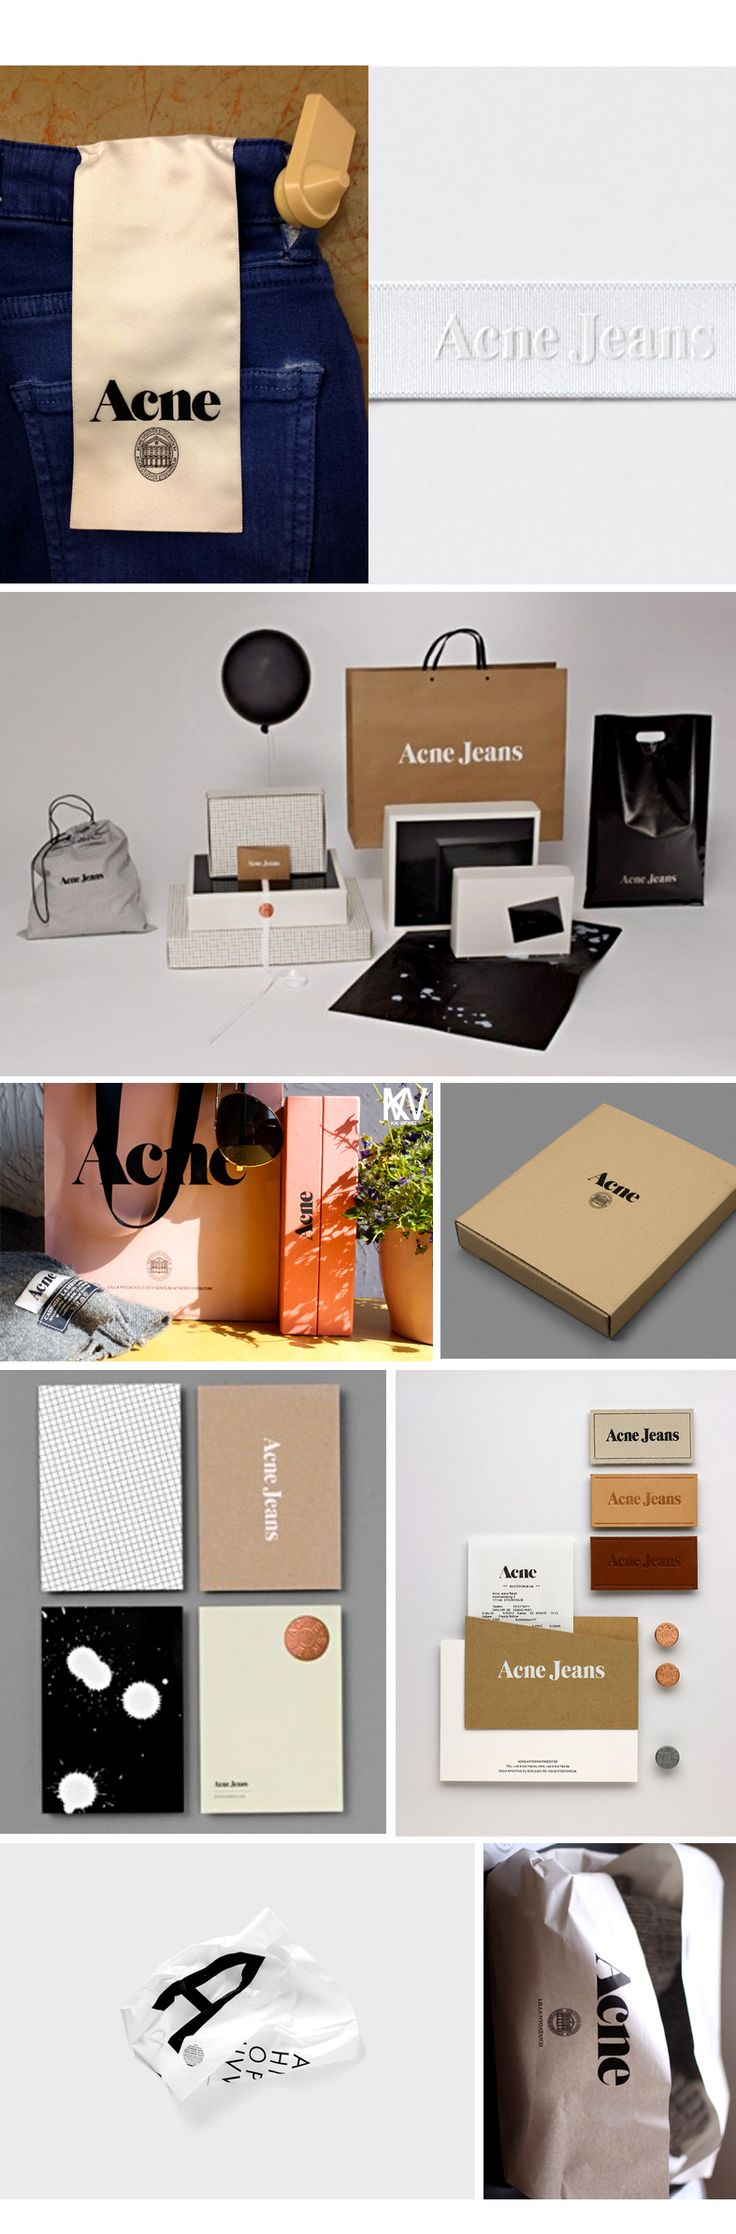 Acne Jean branding and #packaging PD